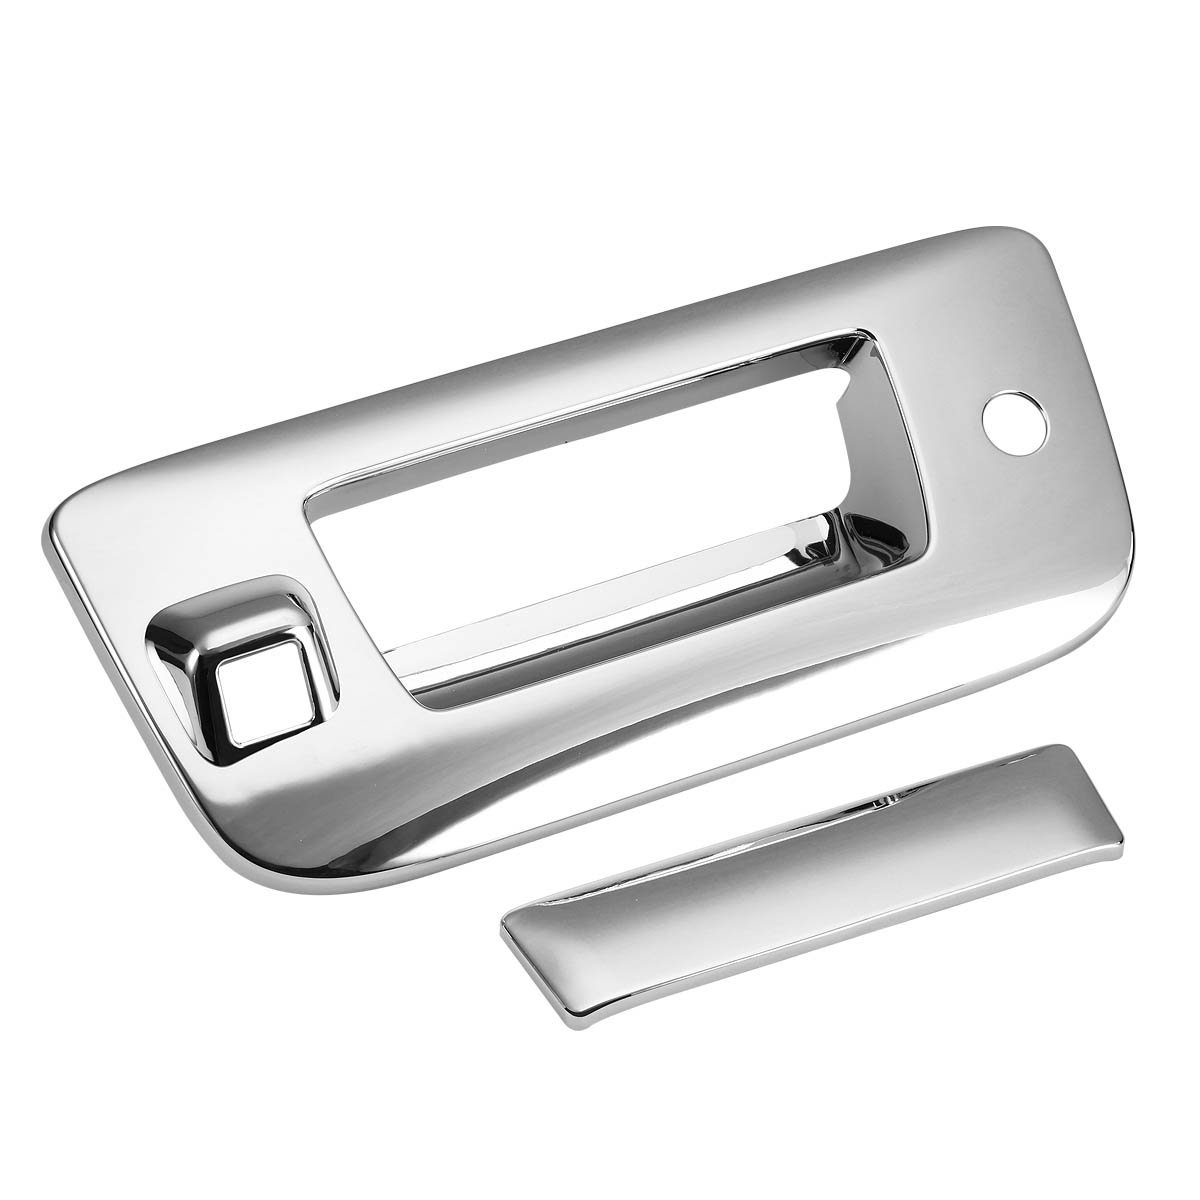 For Chevy 07-13 Silverado Chrome Tailgate Trunk Handle Cover W// Camera Hole